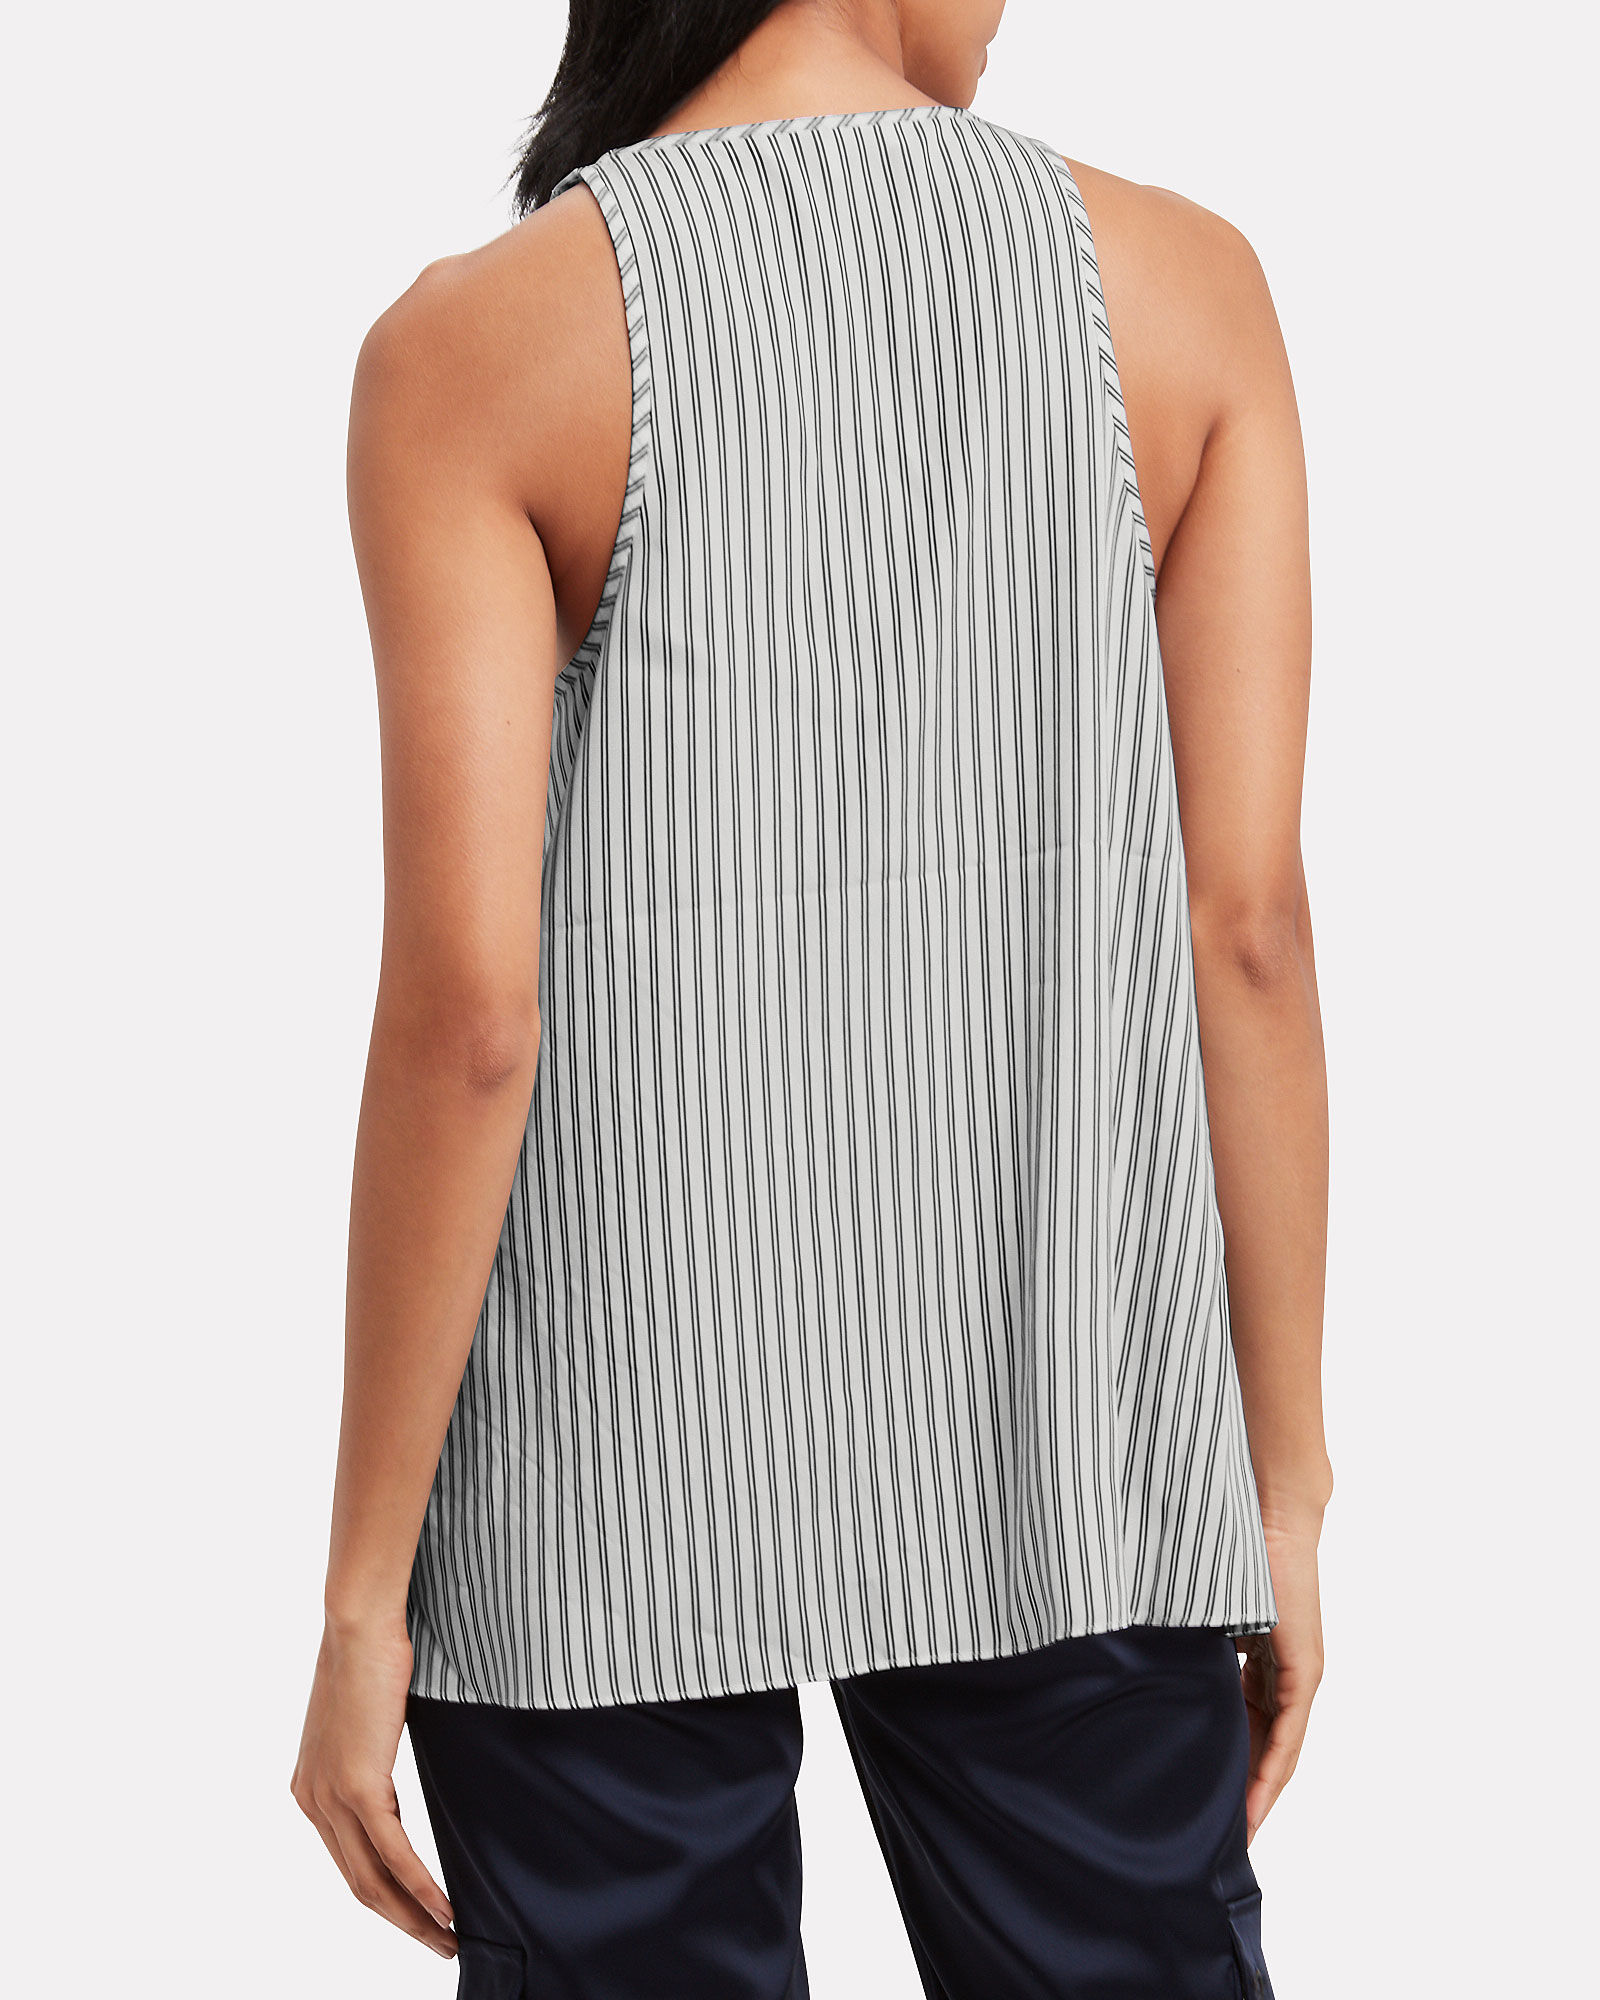 Soft Stripe Shirting Tank, WHITE/BLUE STRIPES, hi-res